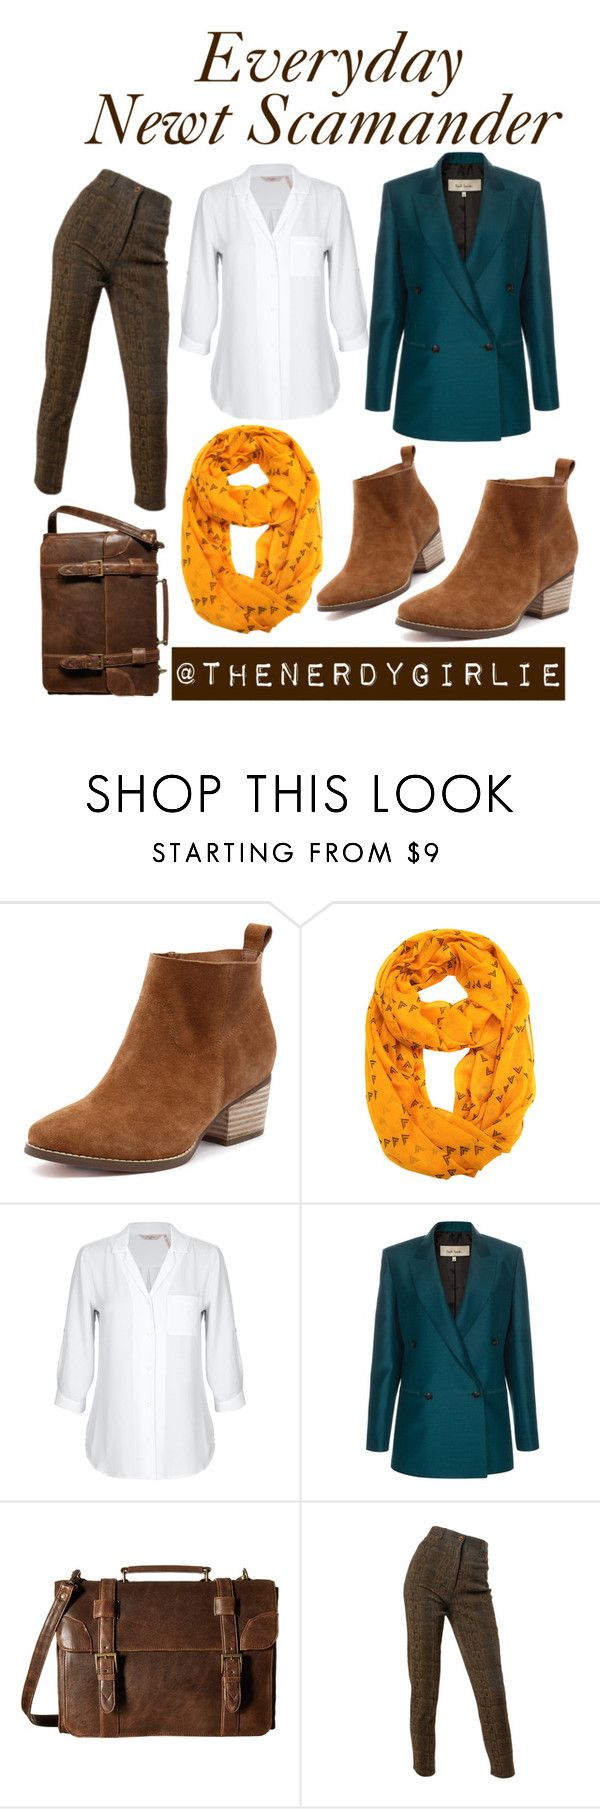 """""""Everyday Newt Scamander"""" by thenerdygirlie ❤ liked on Polyvore featuring Le Nom, Paul Smith, Scully and Emanuel Ungaro"""